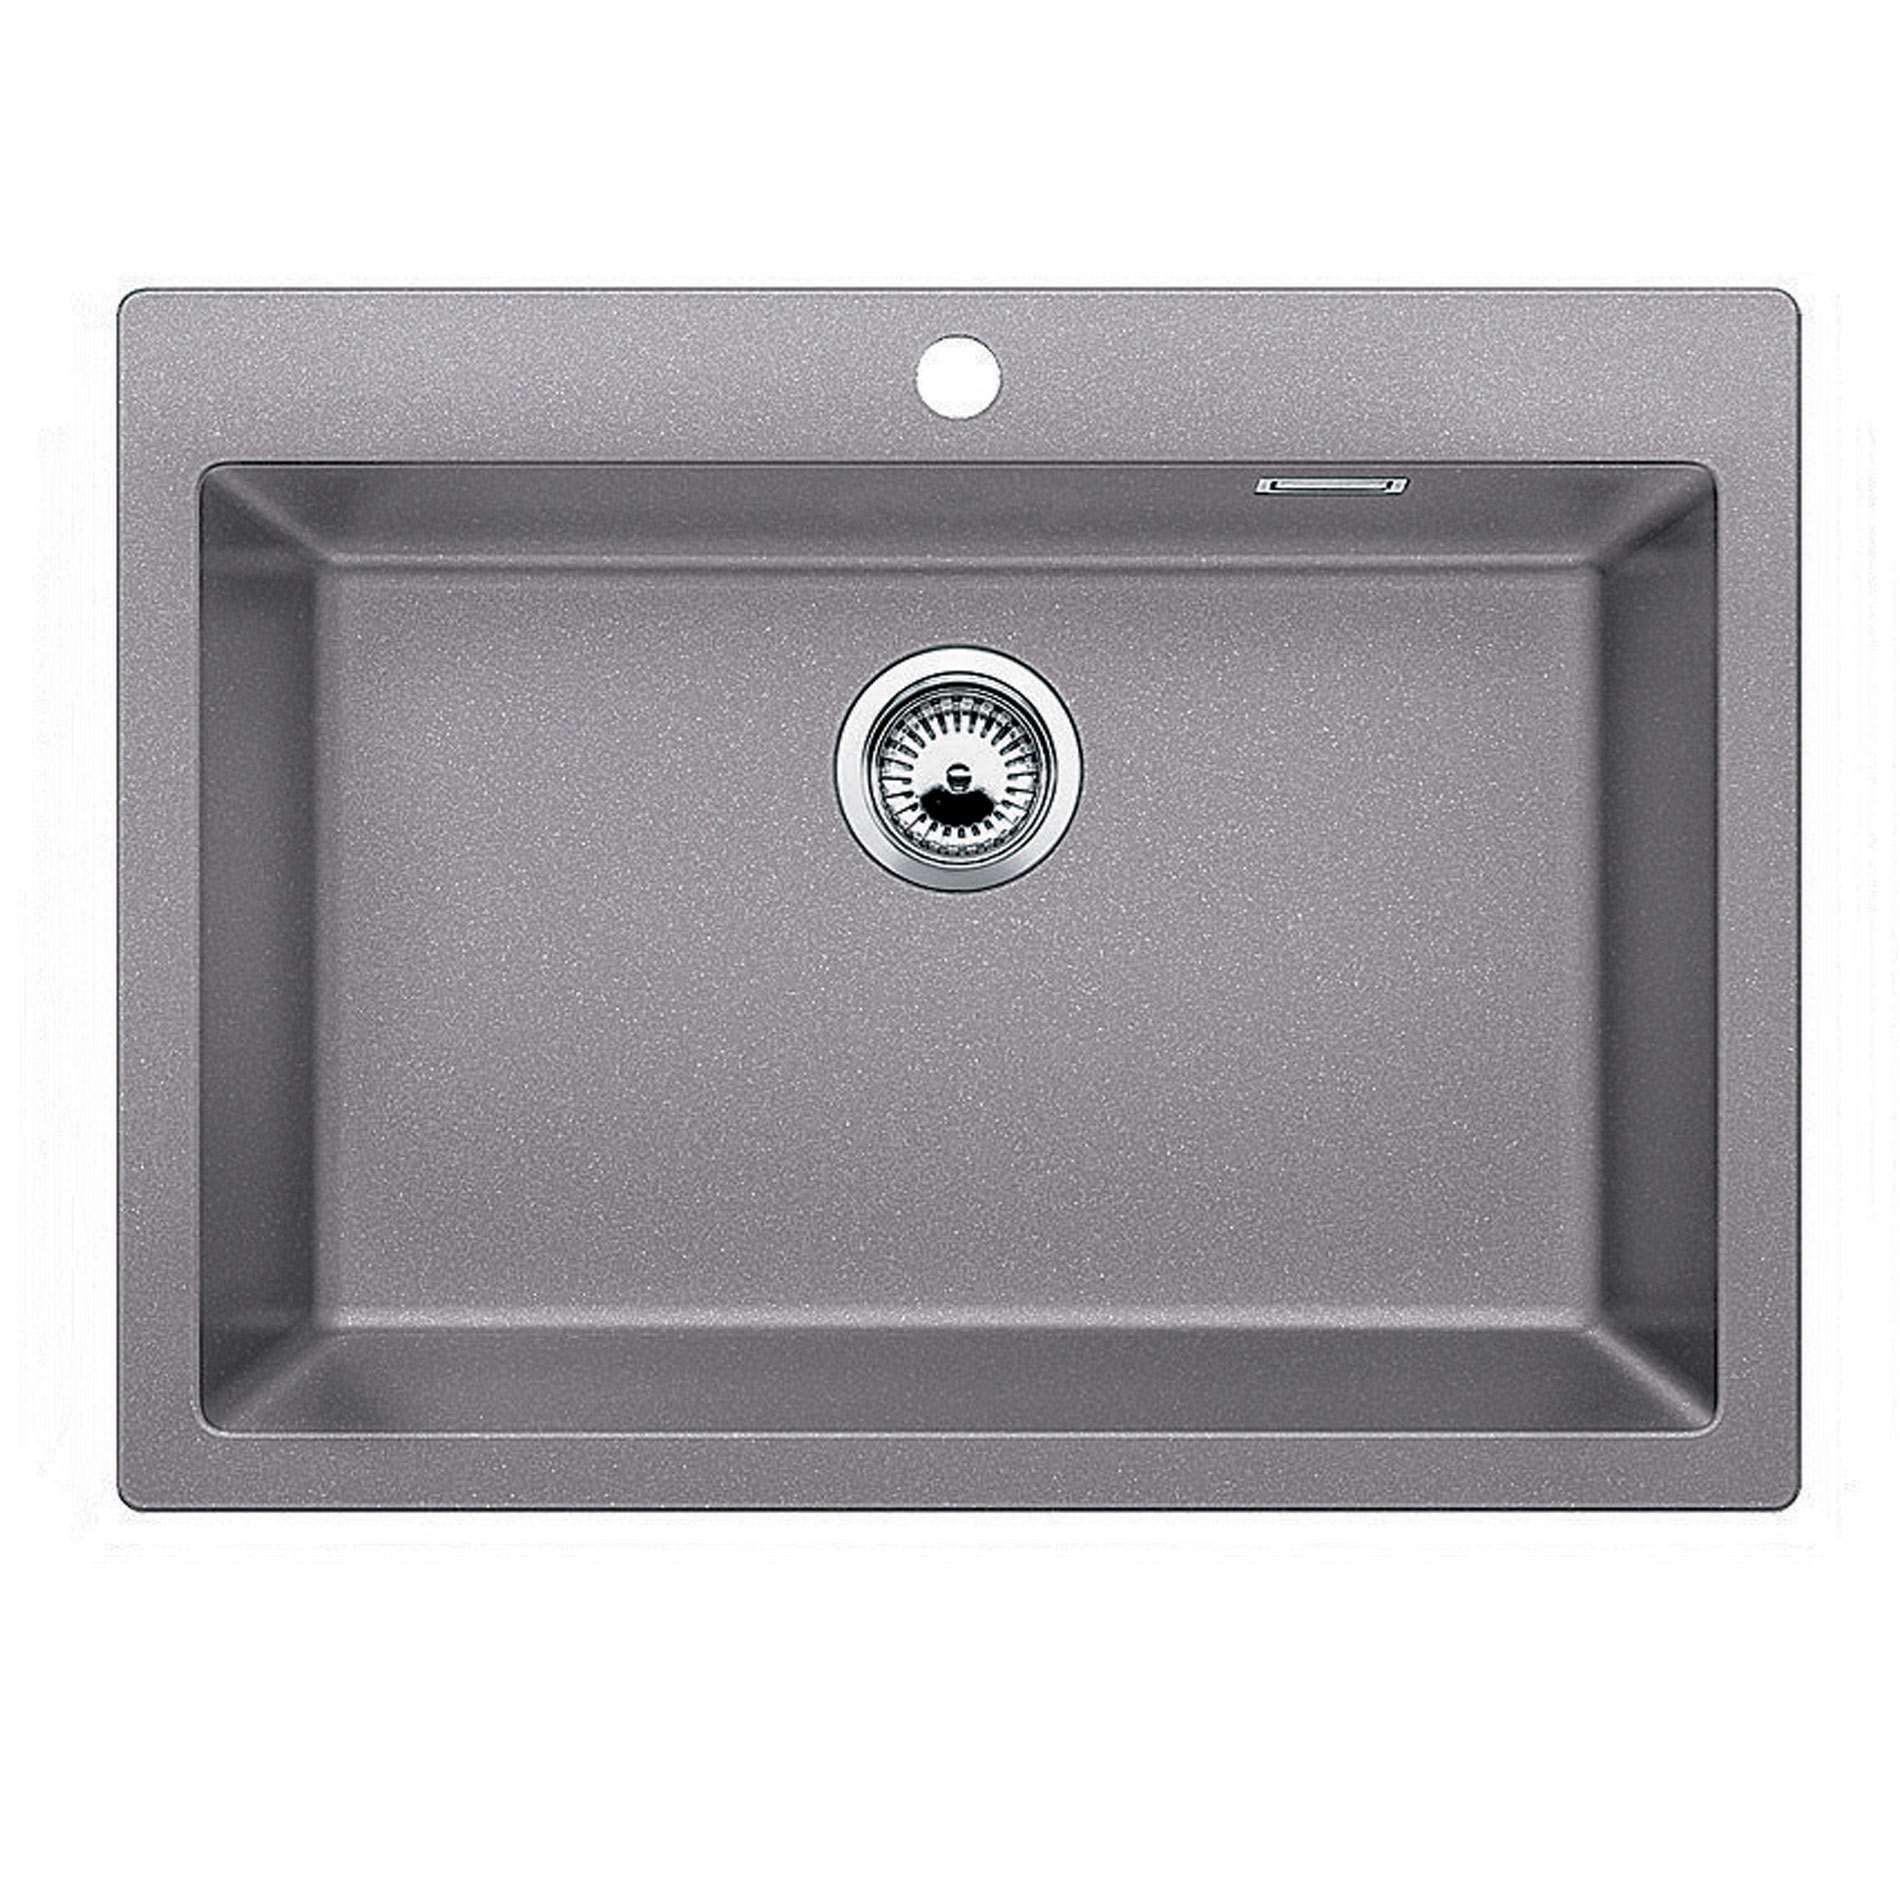 Blanco Pleon 8 Alumetallic Silgranit Sink Kitchen Sinks